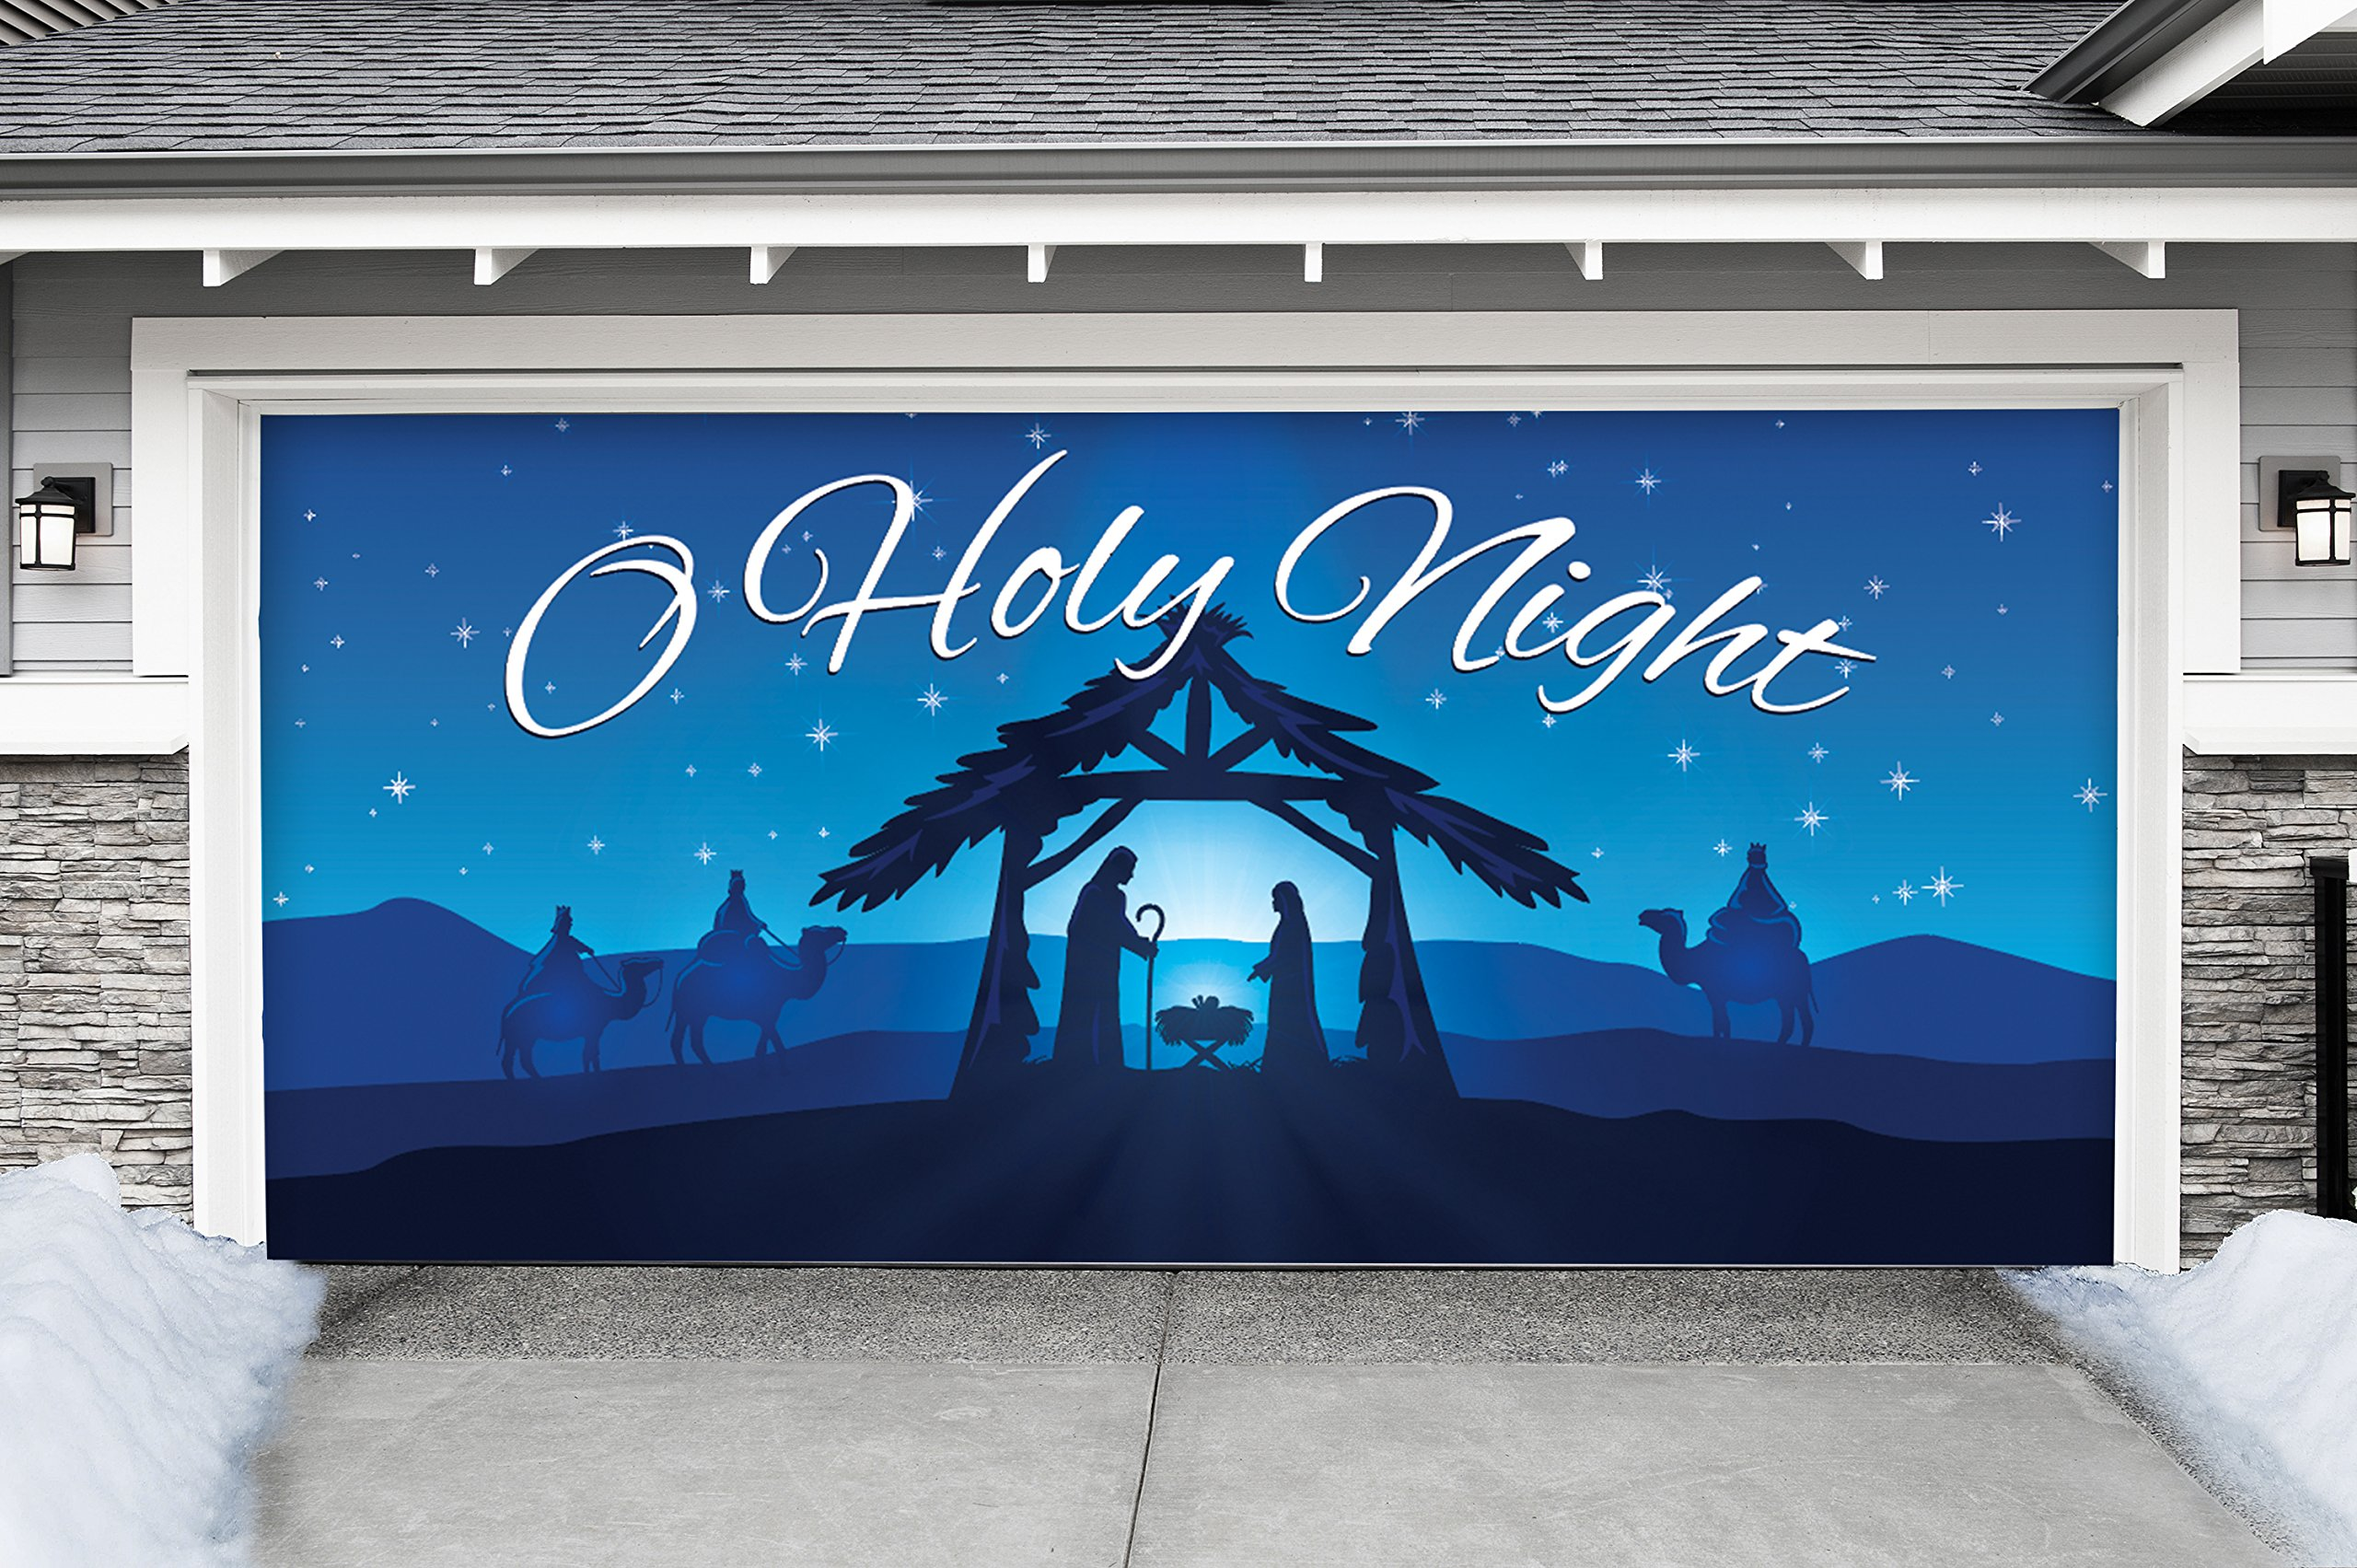 Outdoor Christmas Holiday Garage Door Banner Cover Mural Décoration - Nativity Scene O Holy Night - Outdoor Christmas Holiday Garage Door Banner Décor Sign 7'x16'